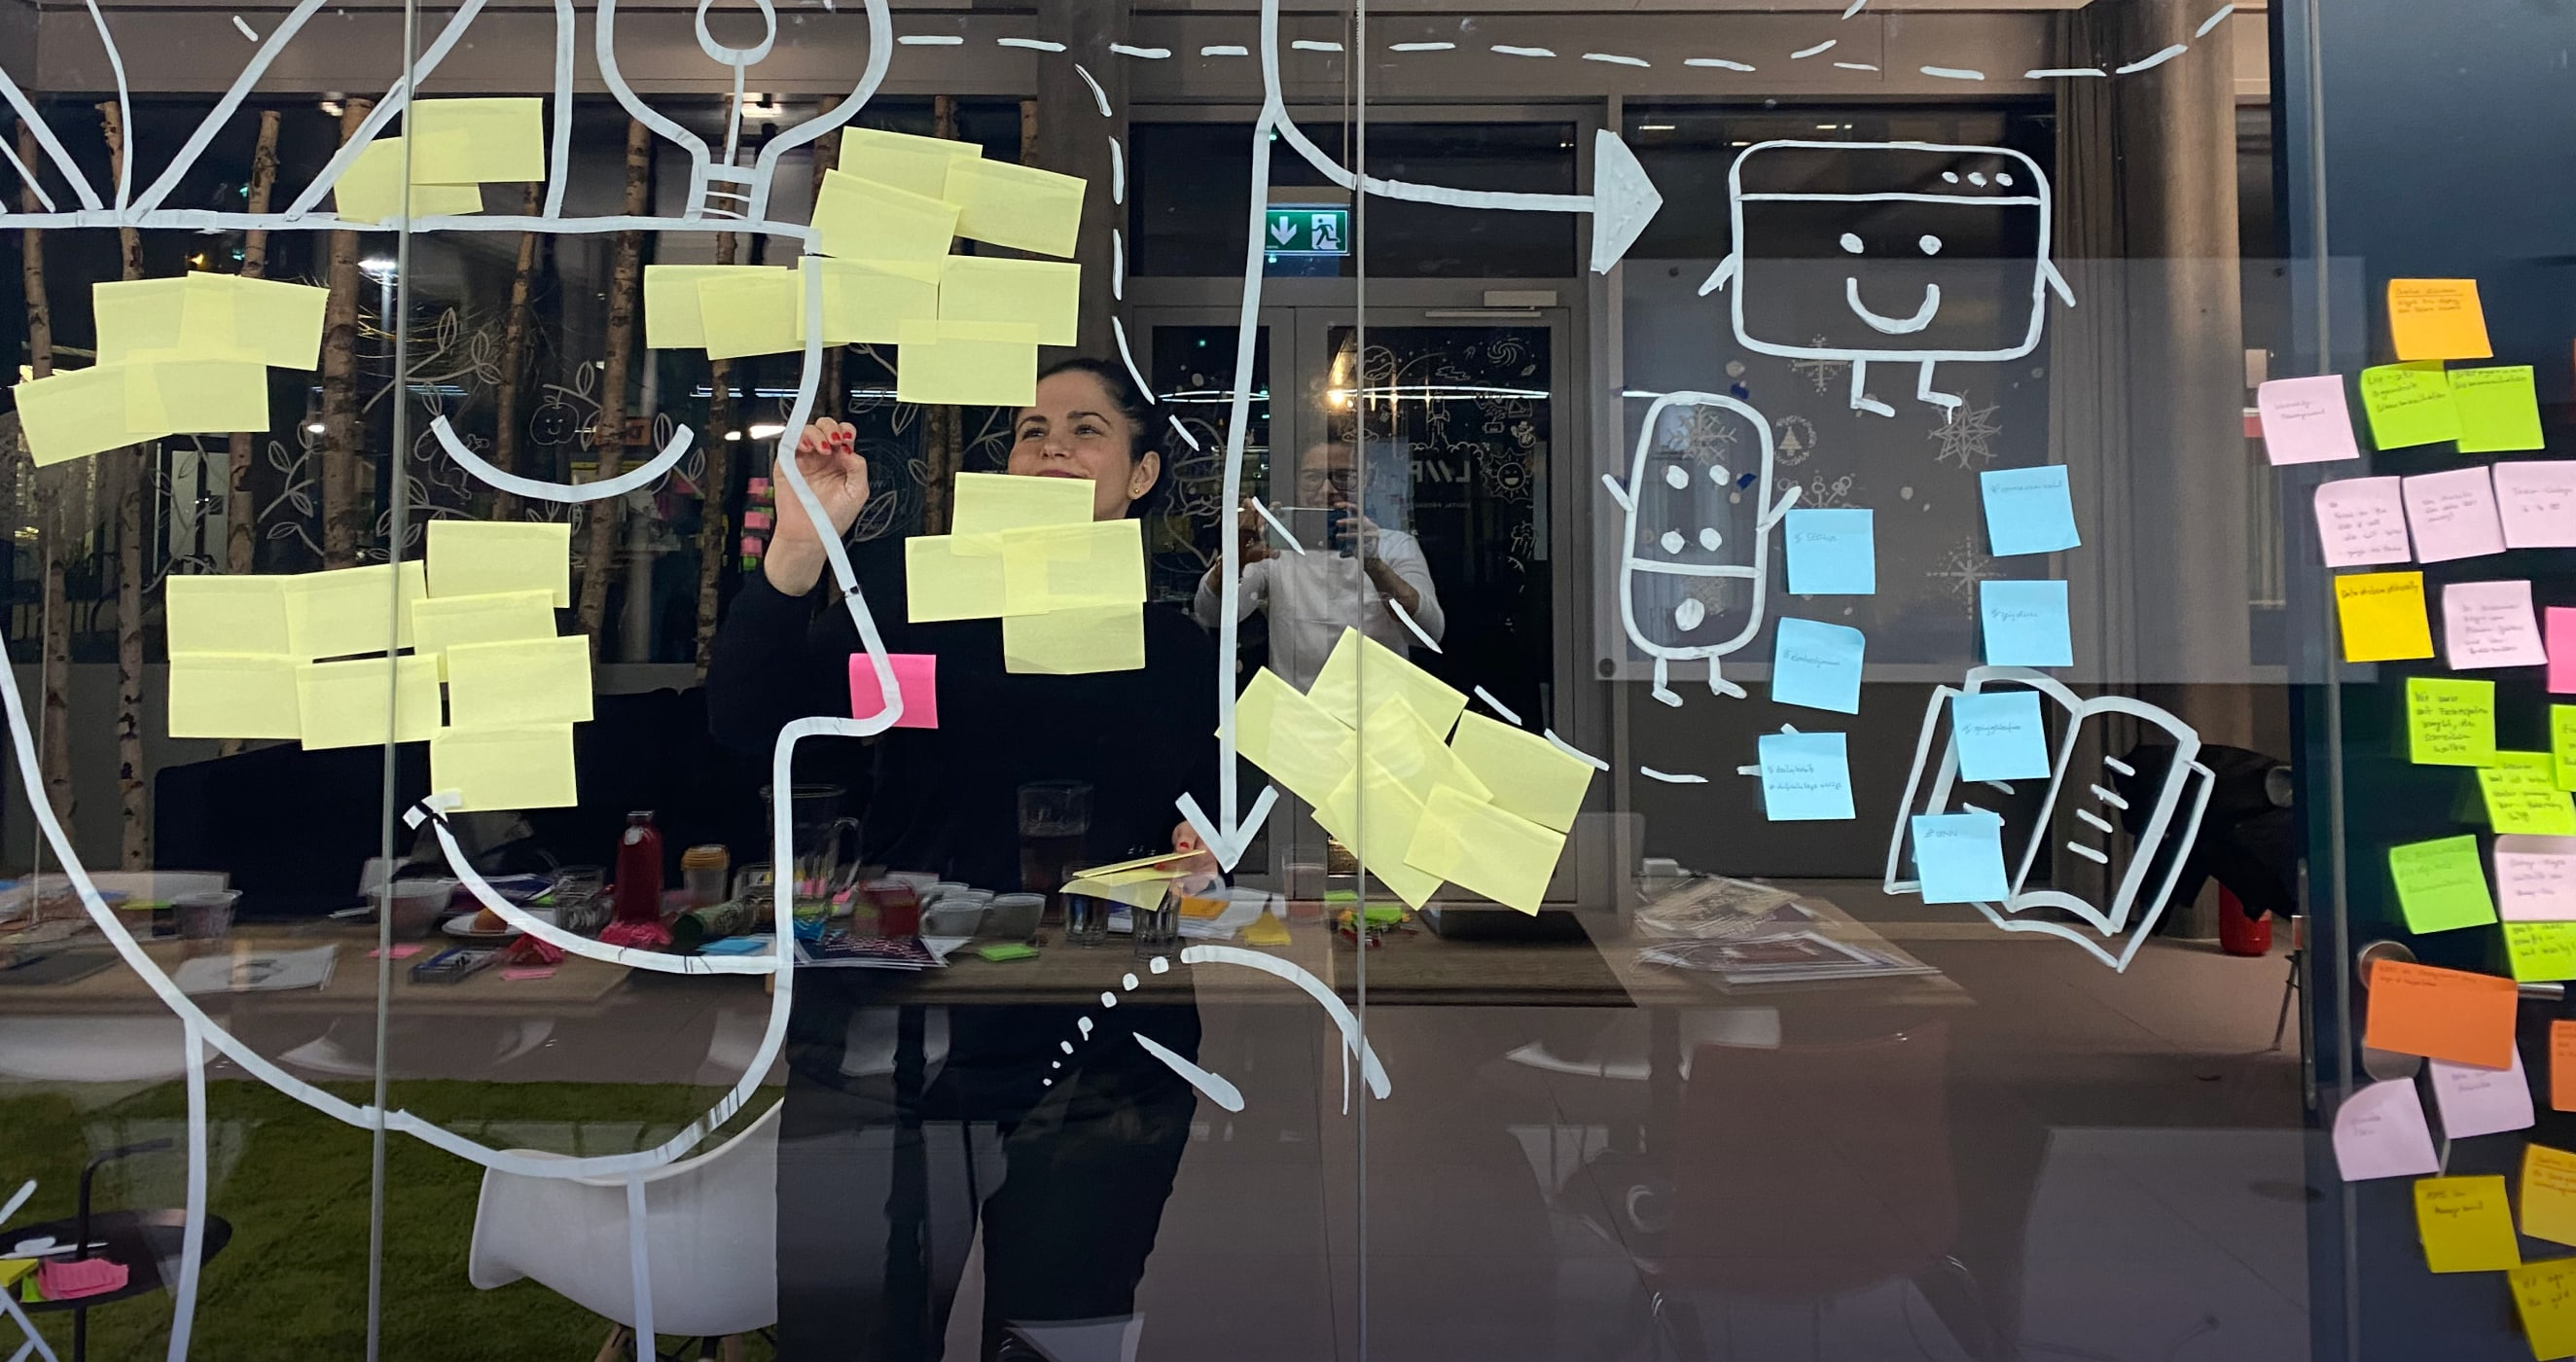 a smiling woman pins post-it notes pinned to a glass wall